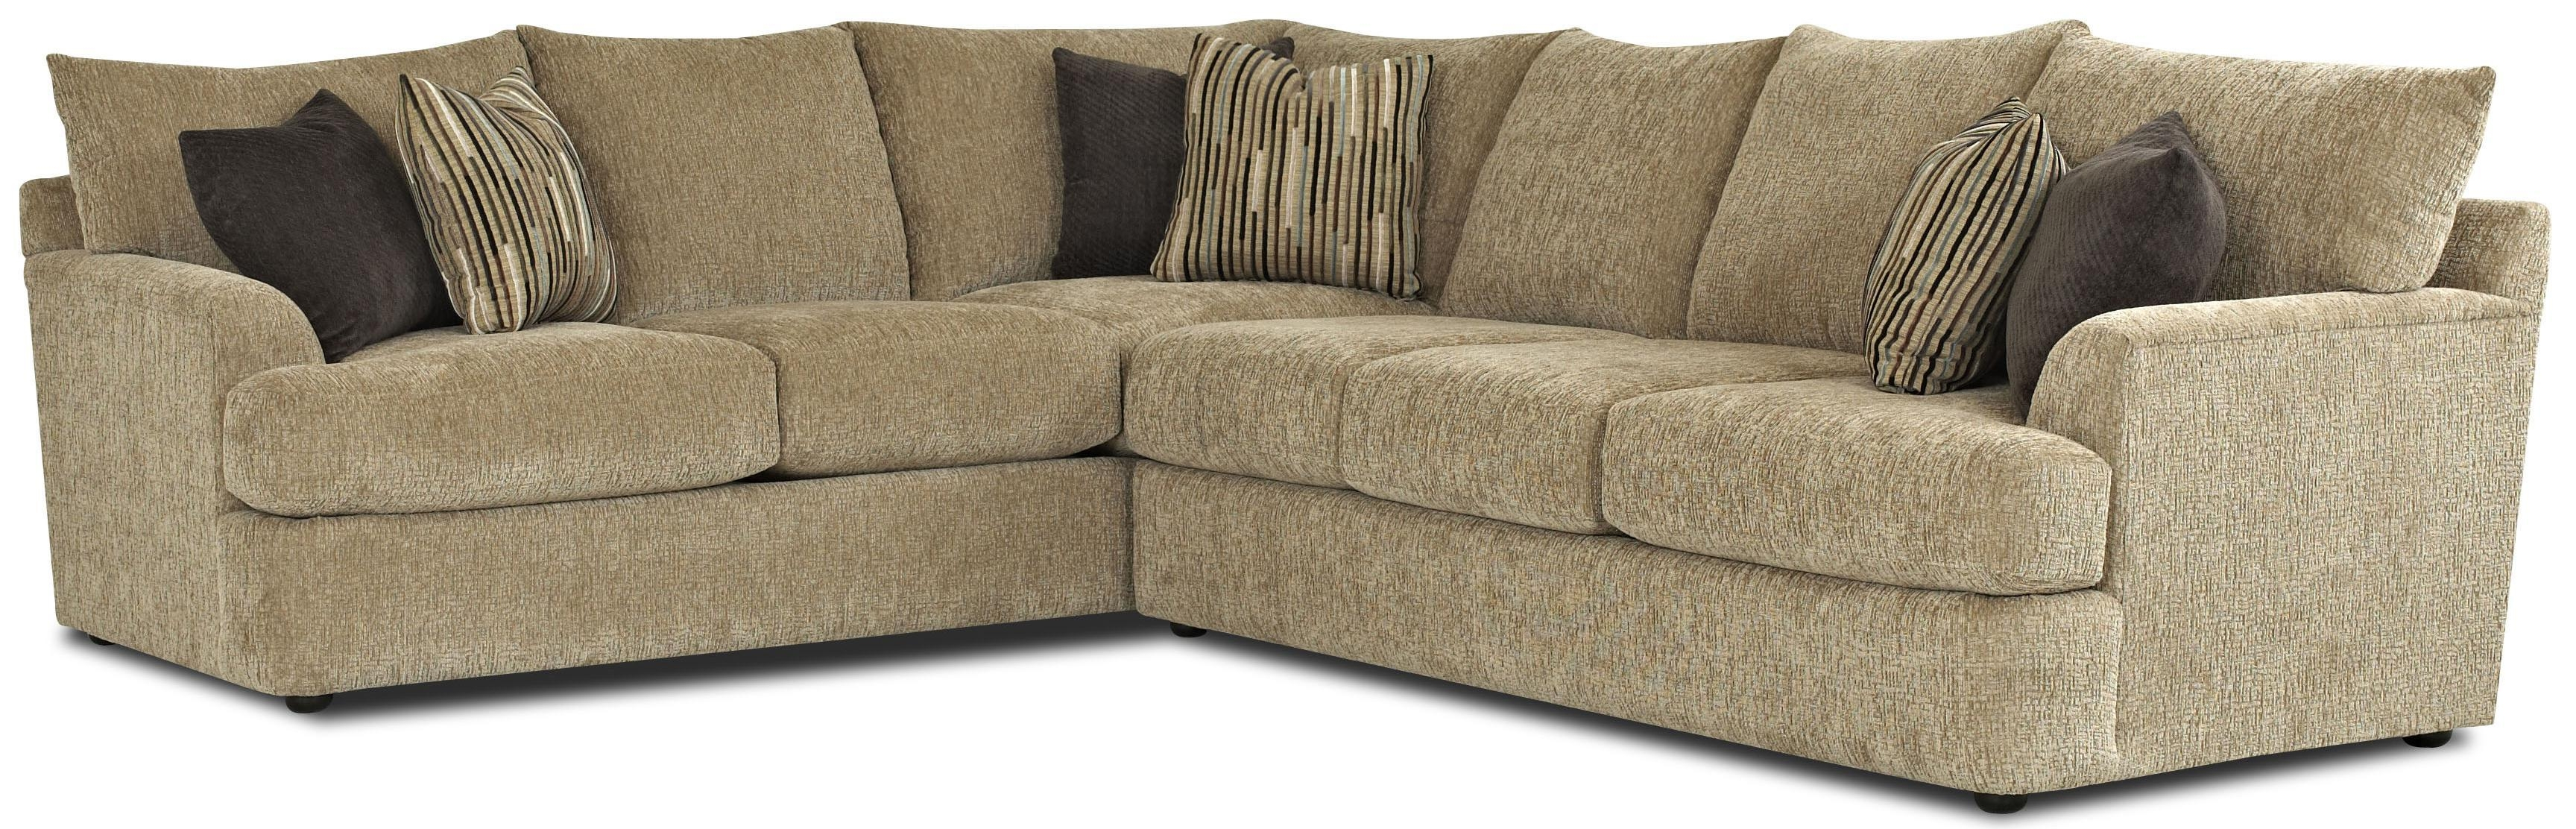 Living Room: Denim Sectional Sofa | Sectionals For Small Spaces Within Sectional Ideas For Small Rooms (Image 14 of 20)